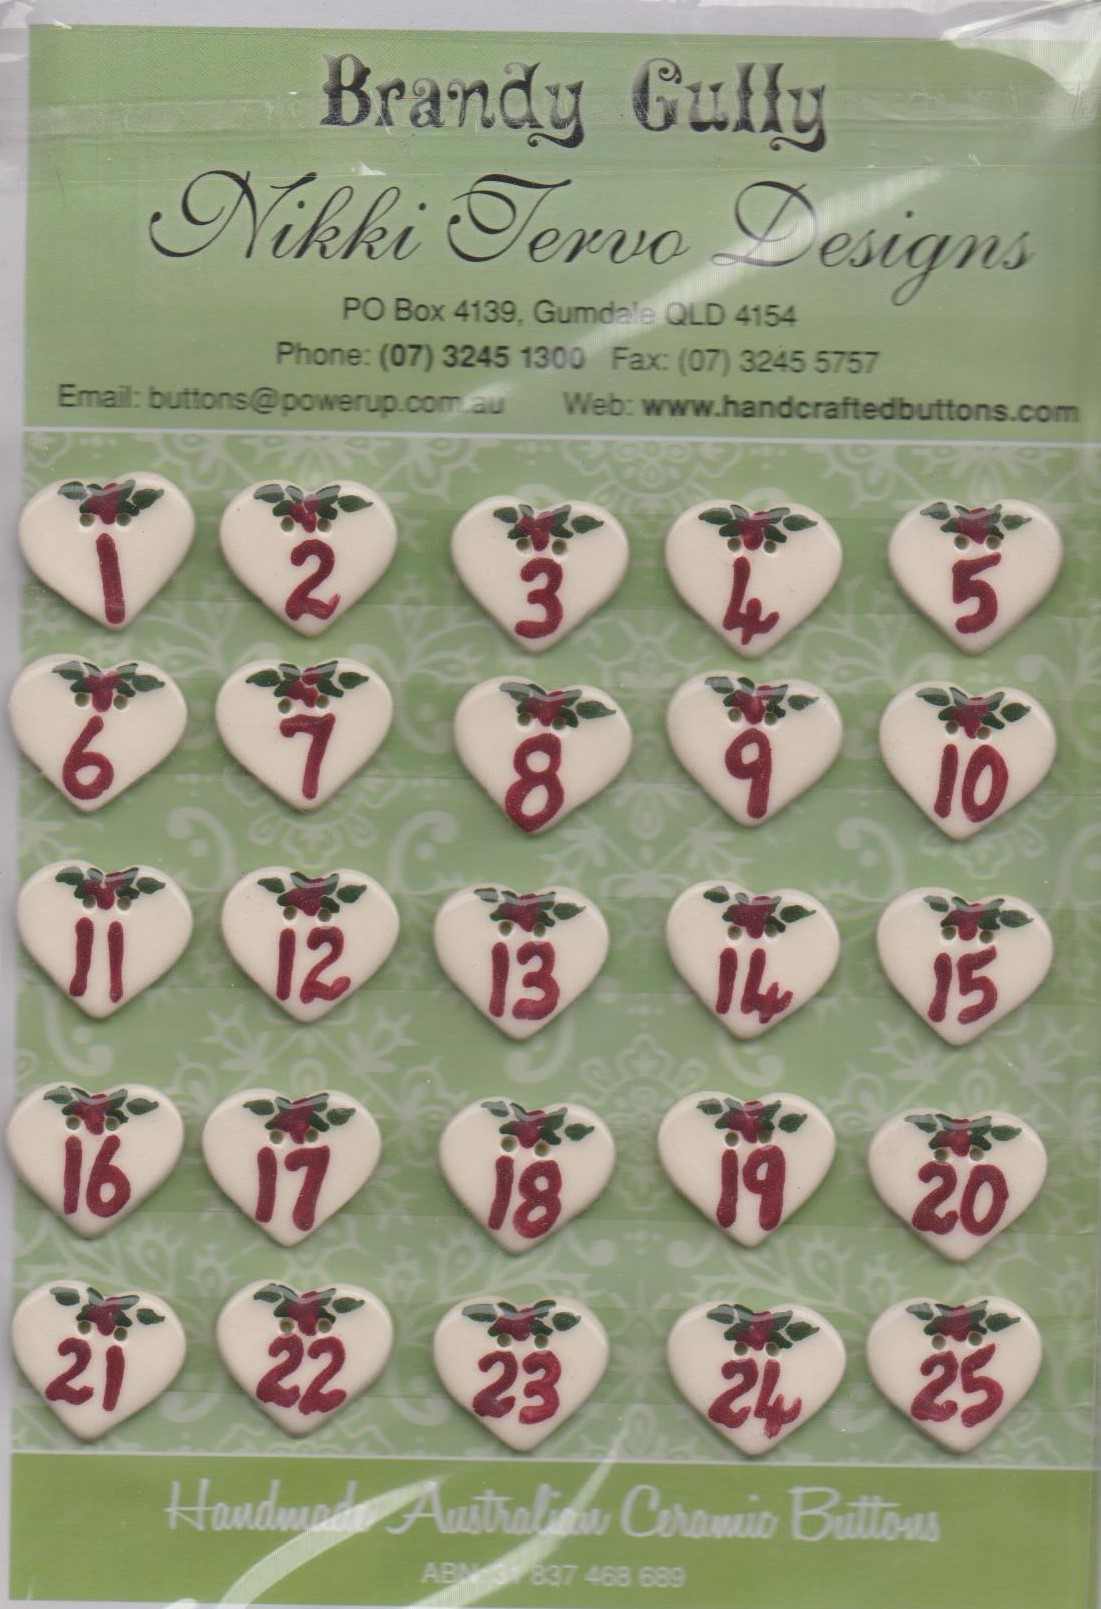 Advent Stocking Pattern with Buttons by Nikki Tervo from Brandy Gully